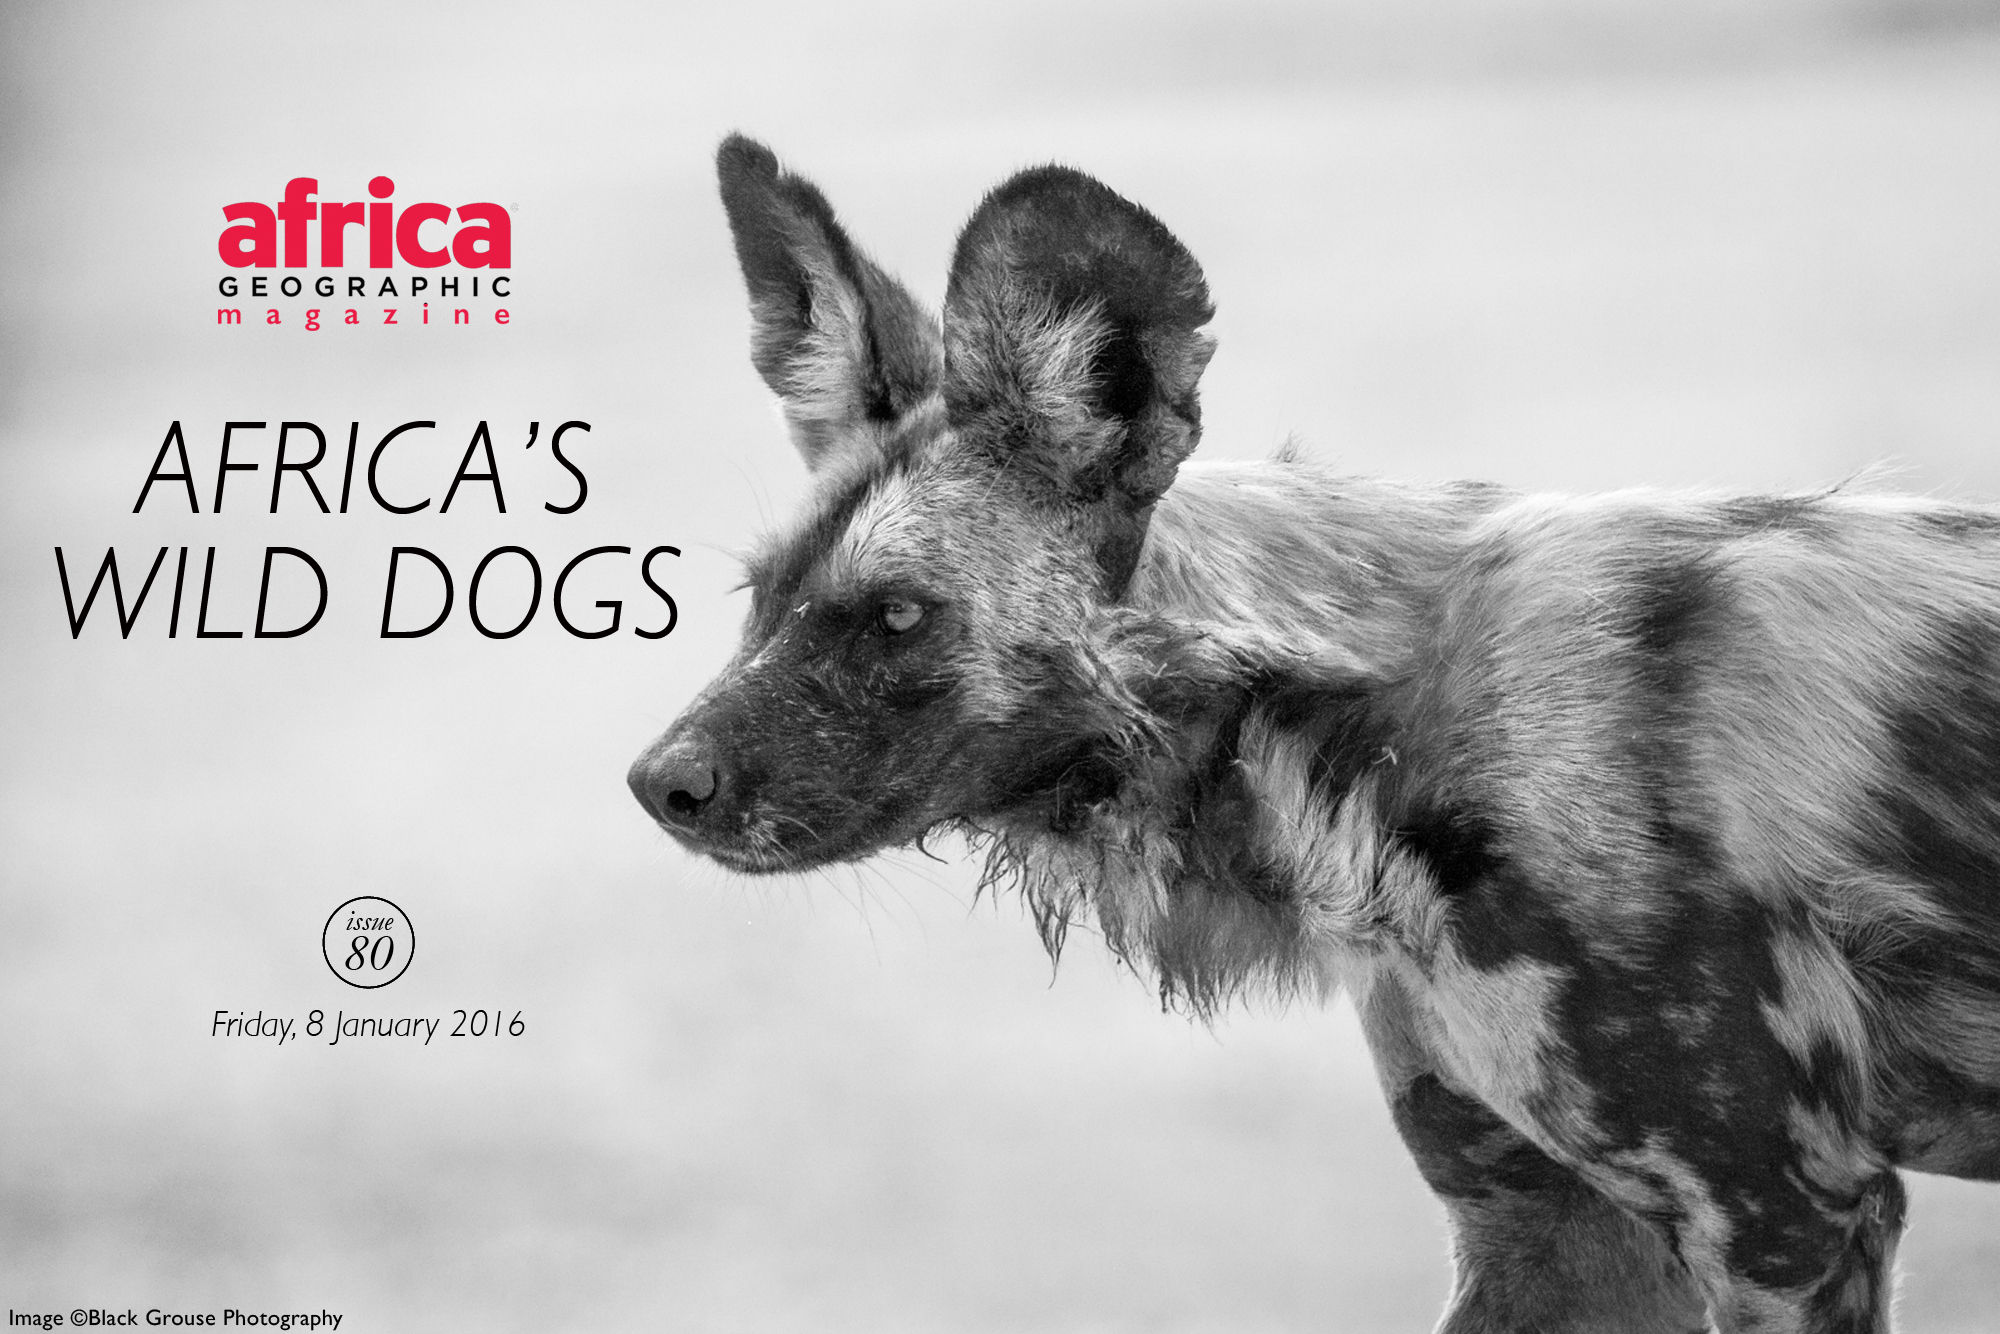 africas-wild-dogs-issue-80